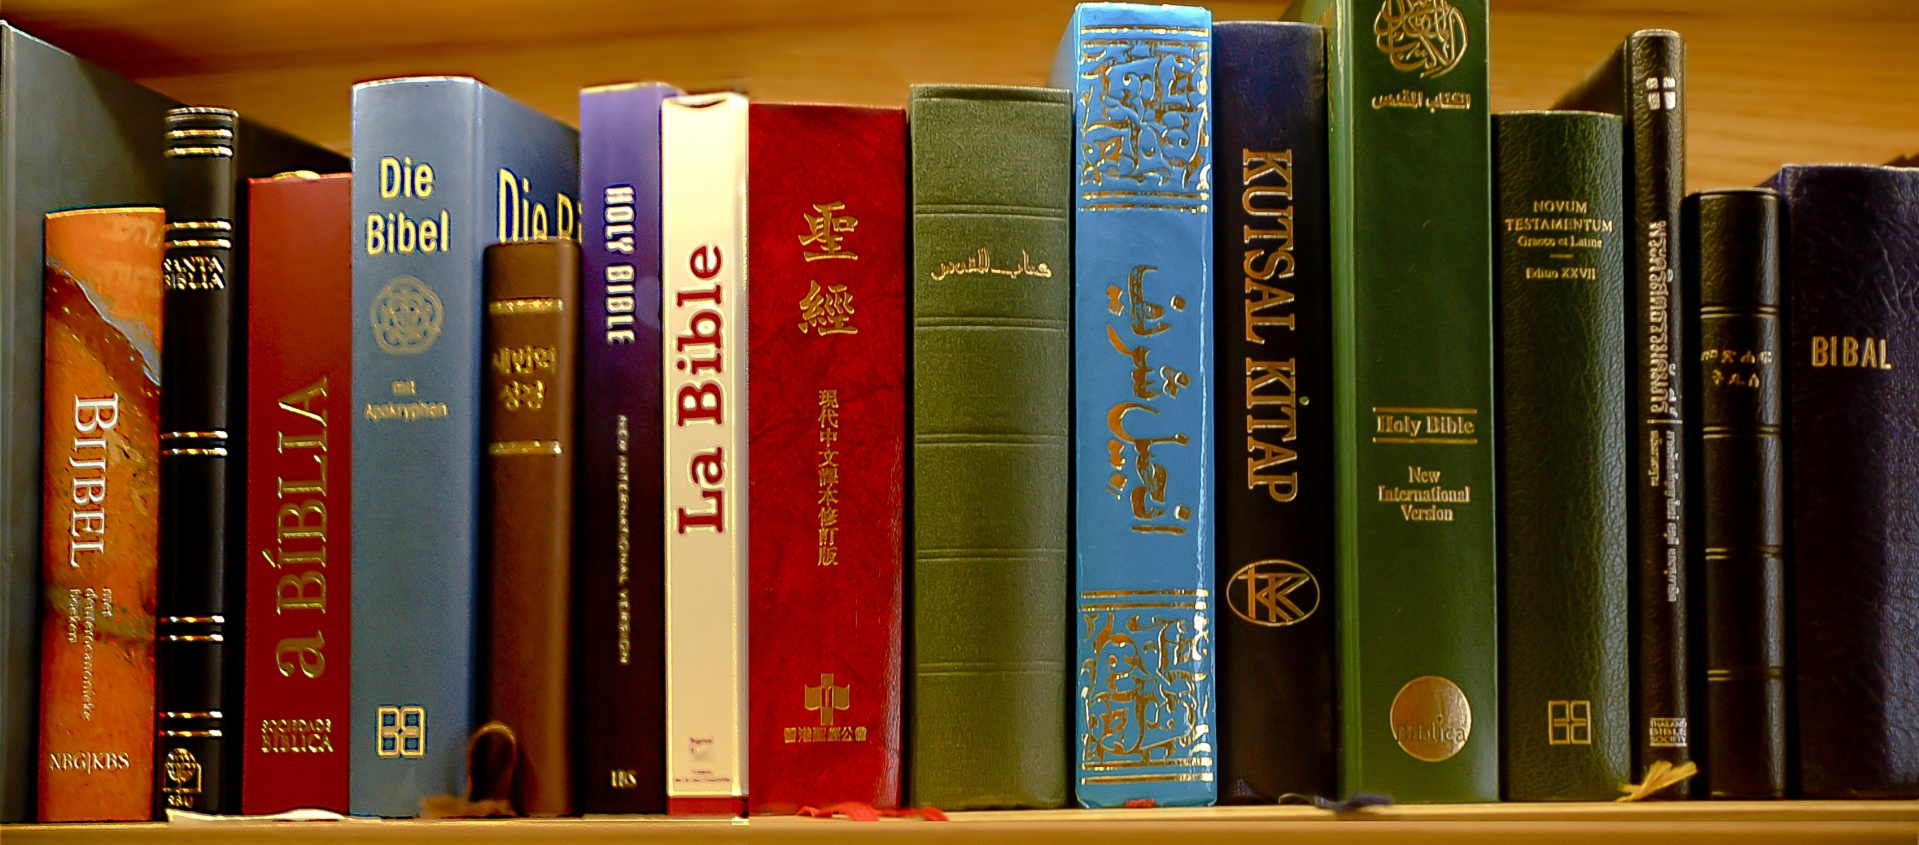 Bible in different languages